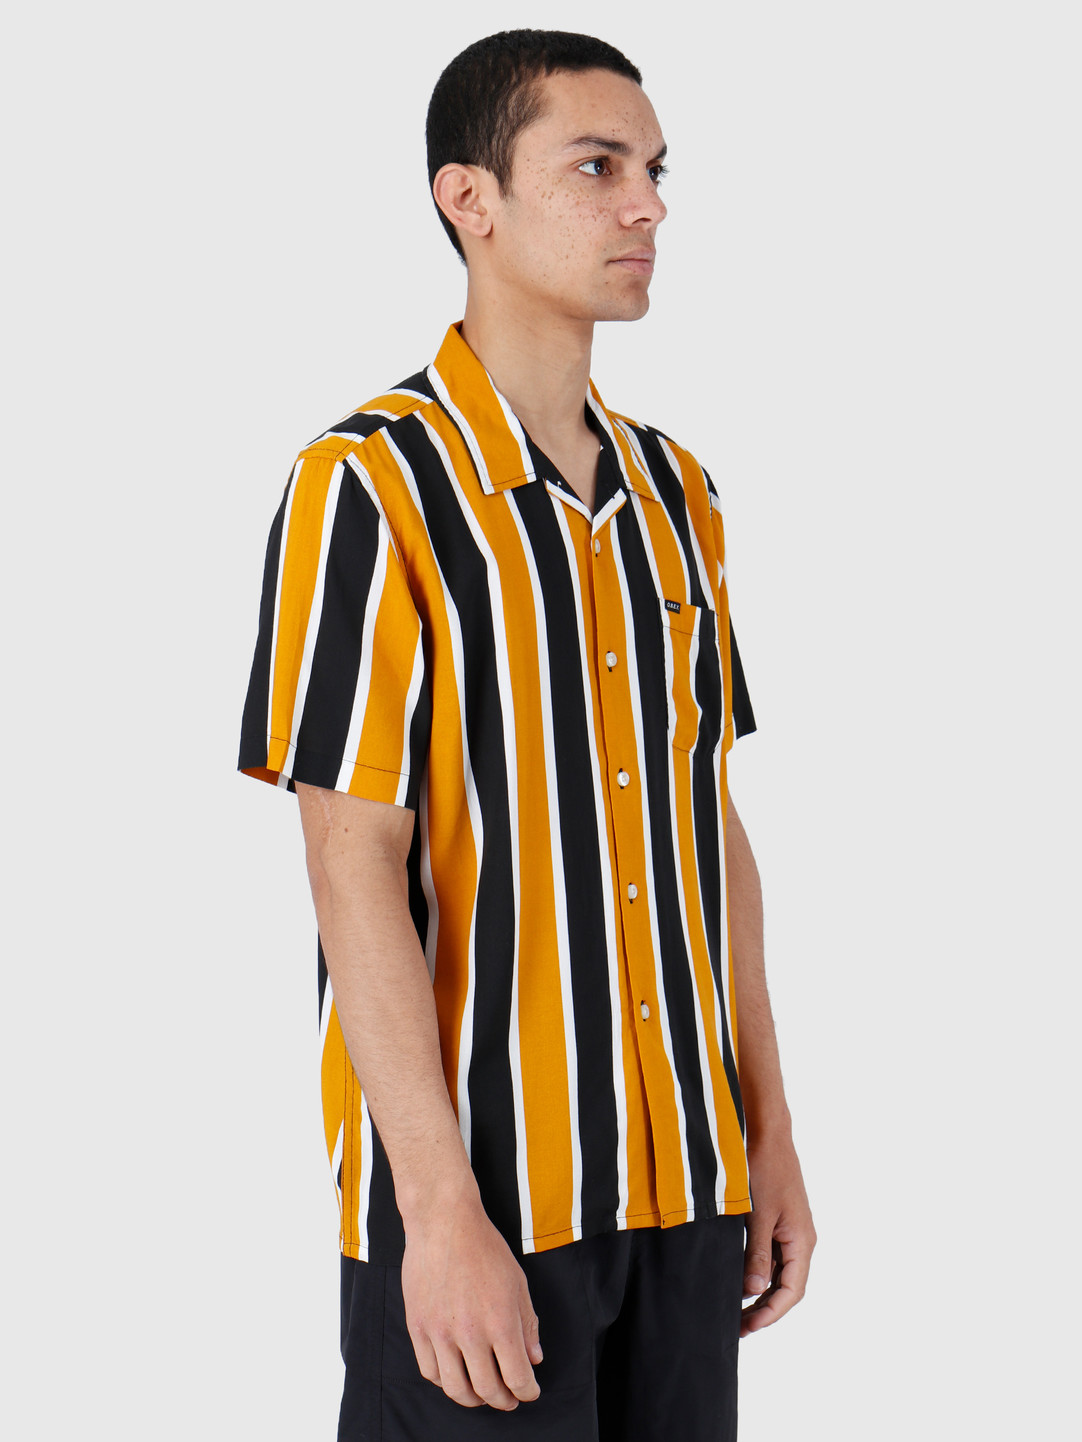 Obey Obey Shortsleeve Woven Mineral Yellow Multi 181210245-MRL